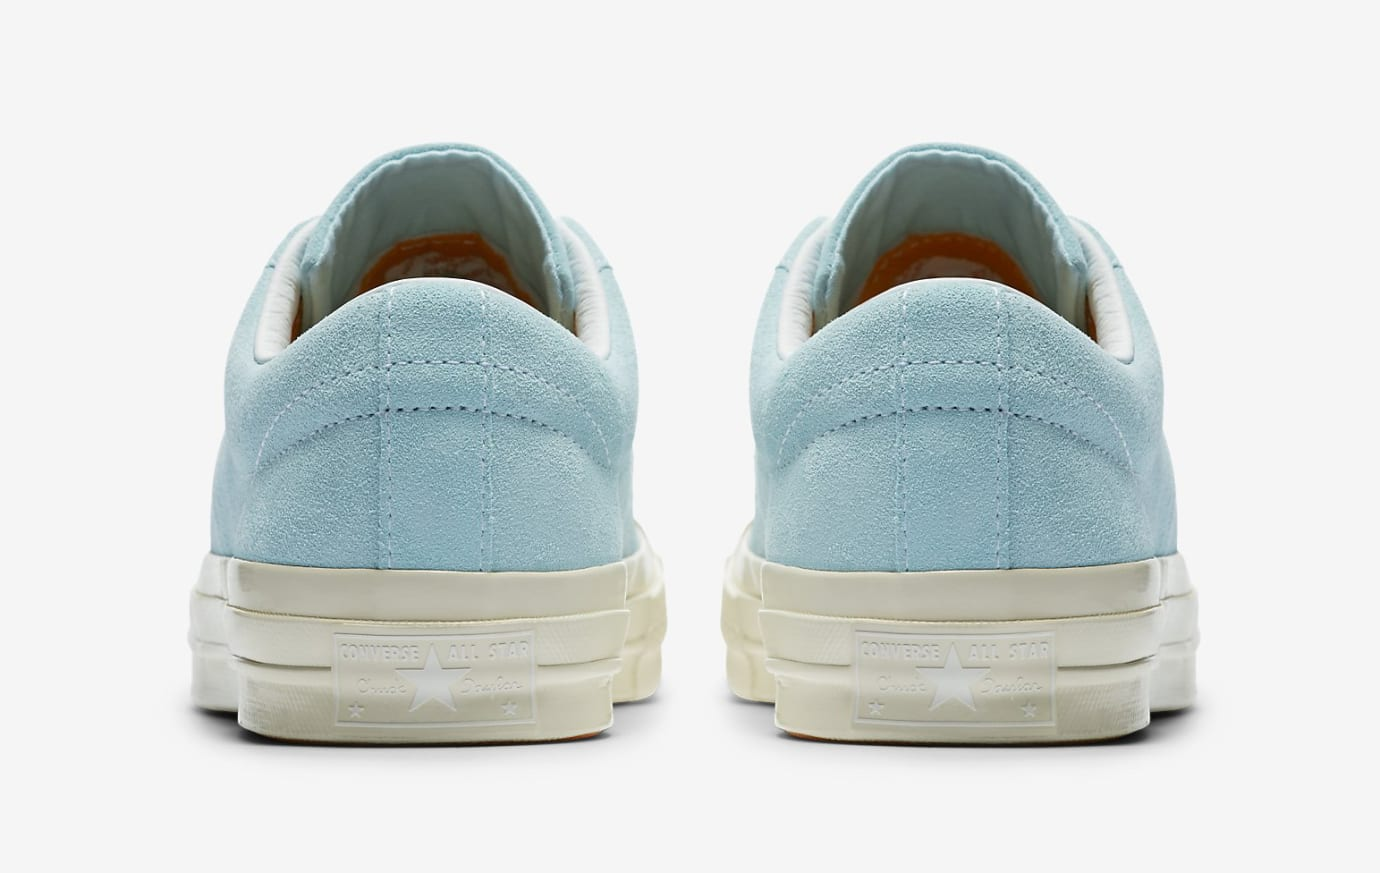 Tyler the Creator Converse One Star Heel